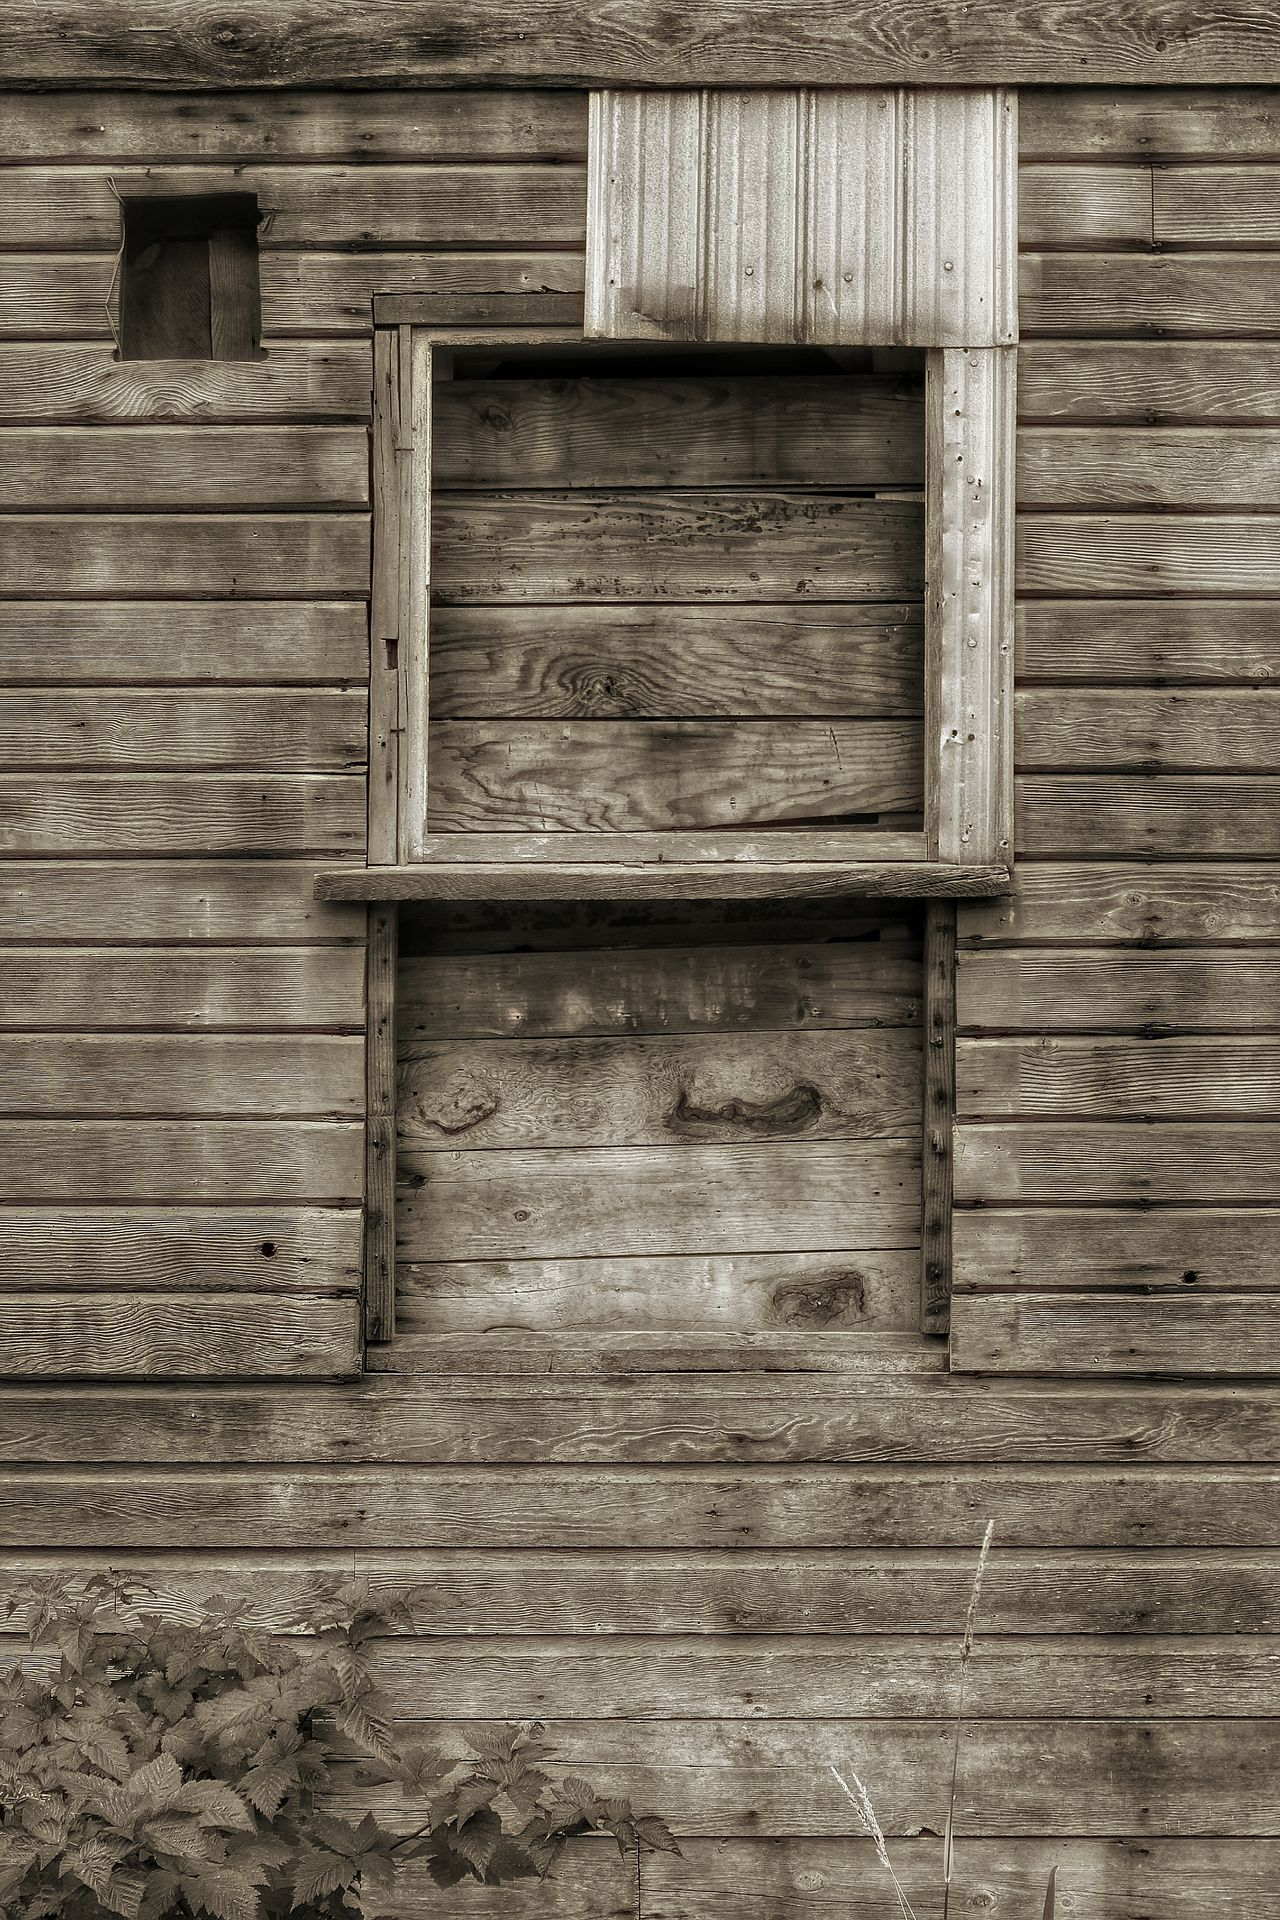 ramshackle Woodenstructure Wood Rustic Patina Sepia 1900s